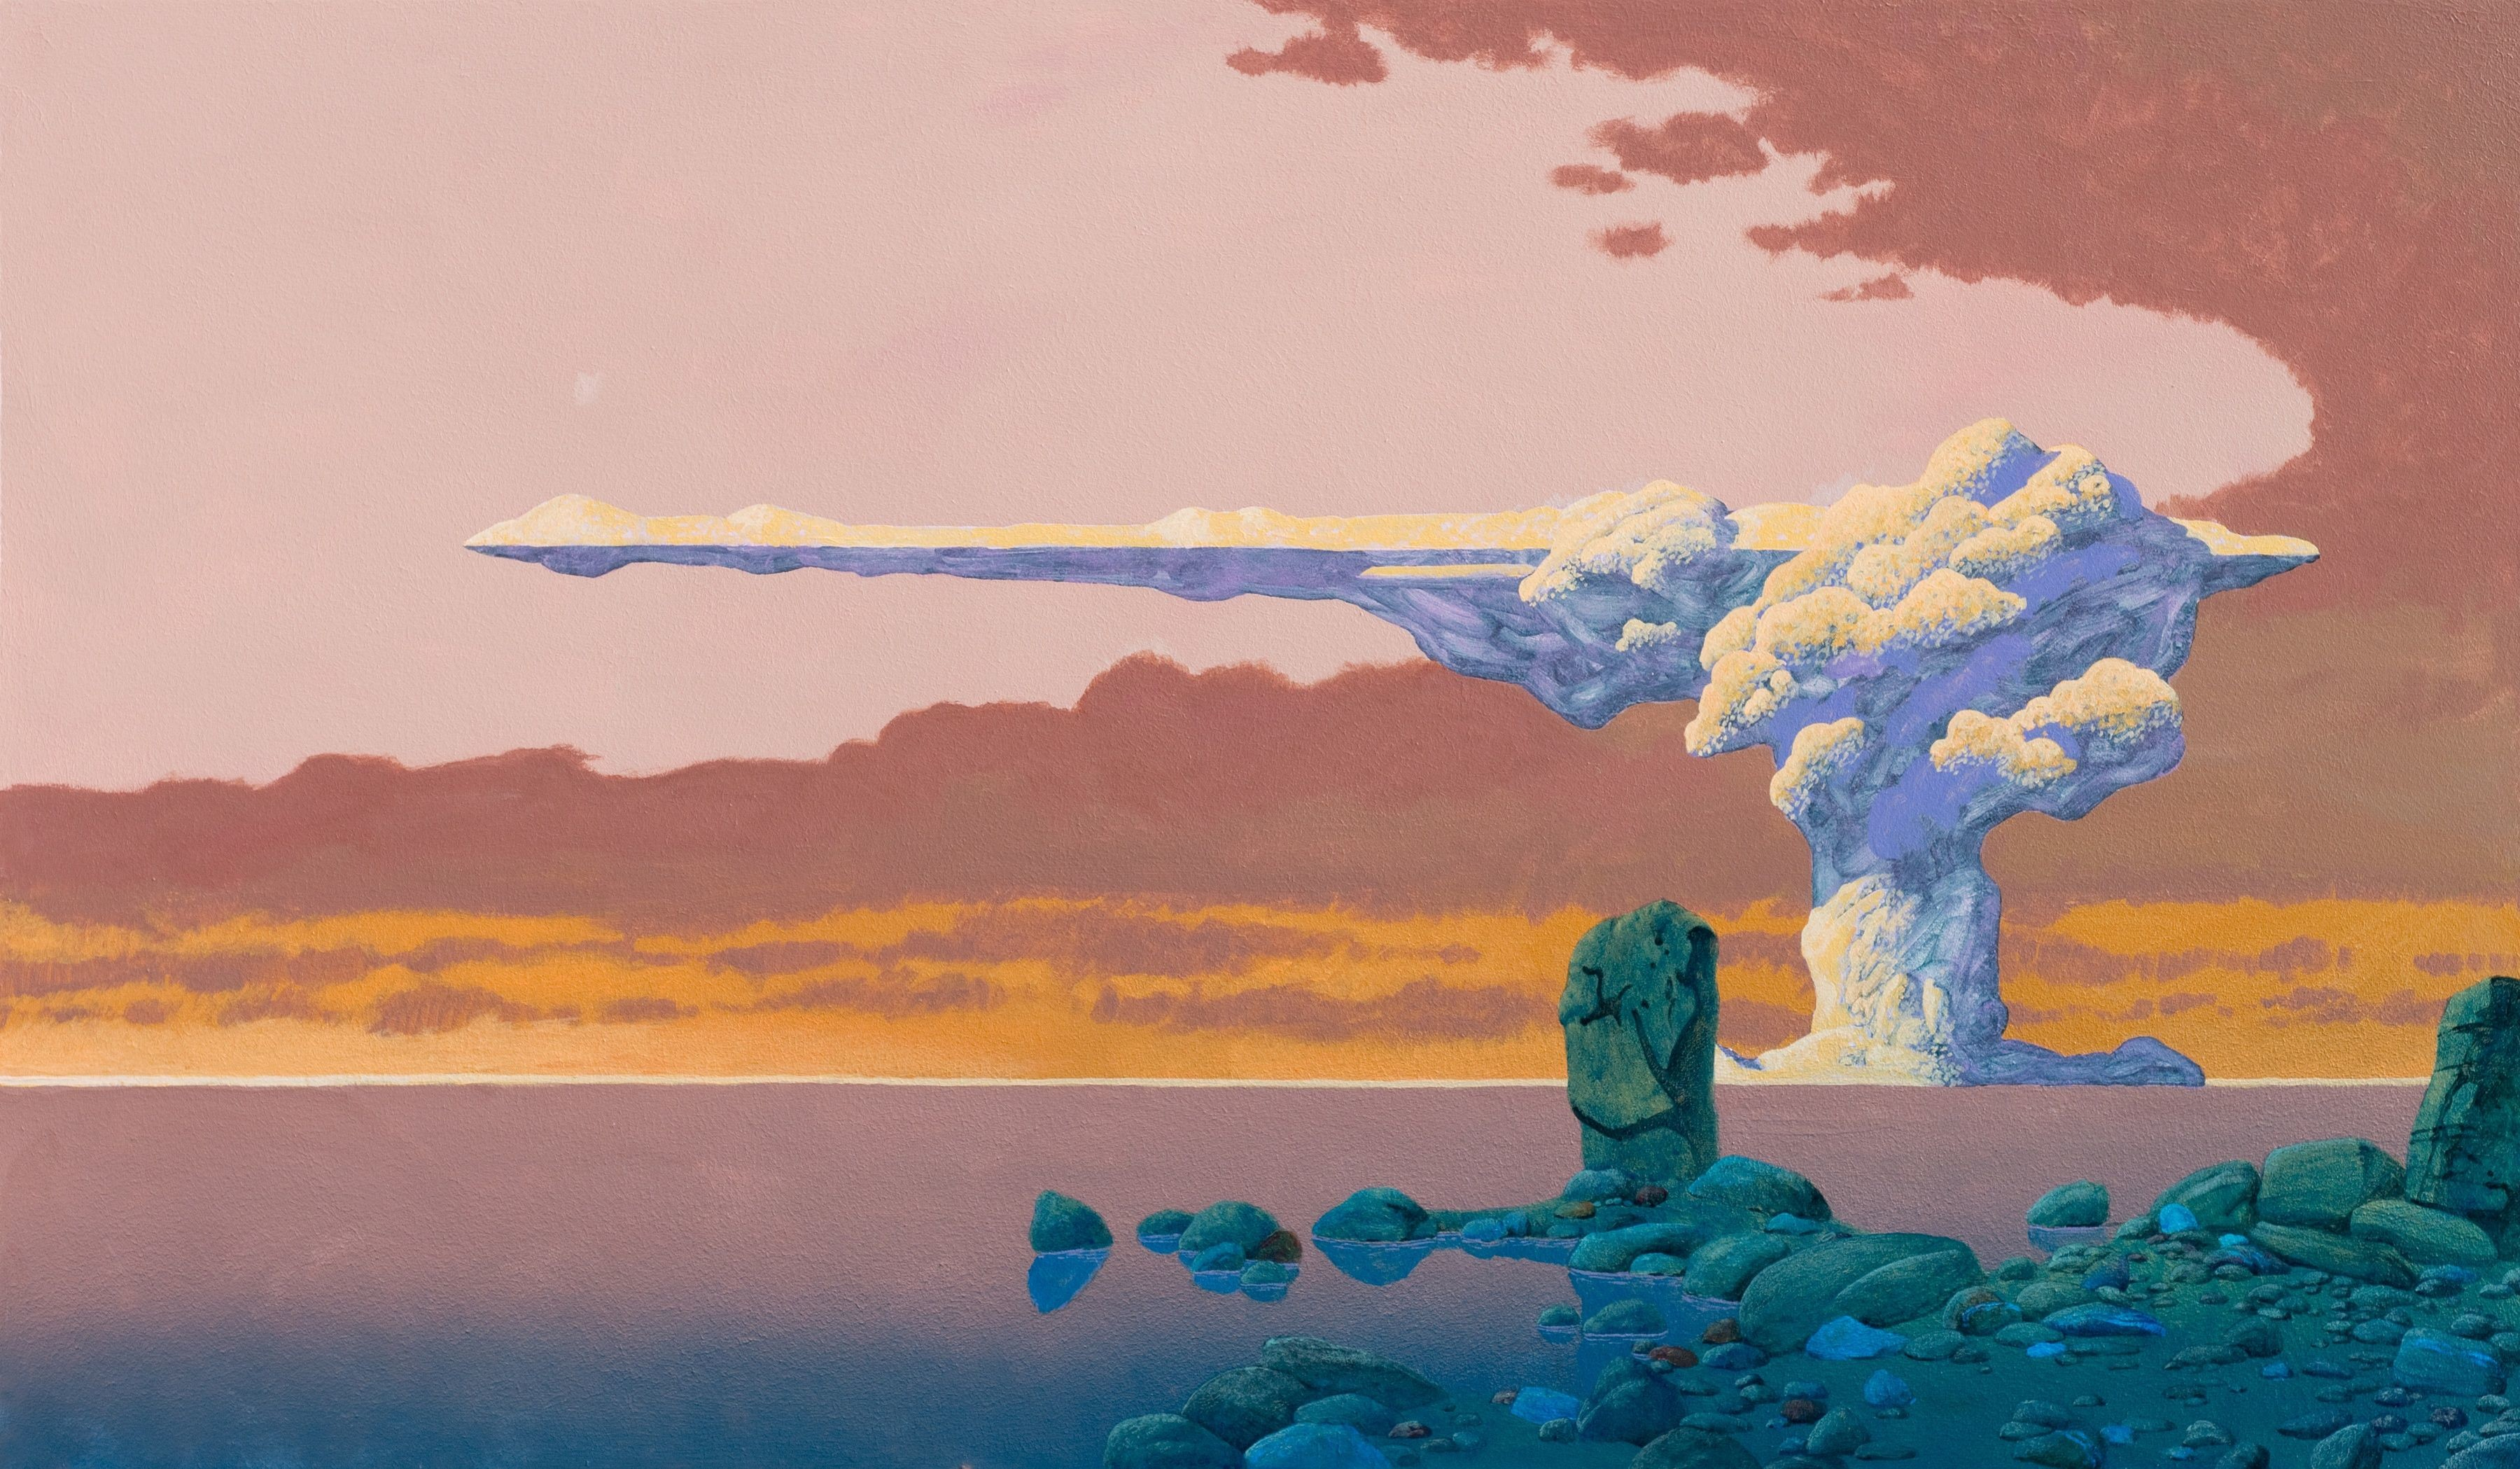 3600x2098 The weird worlds of Roger Dean, prog rock's artist in residence